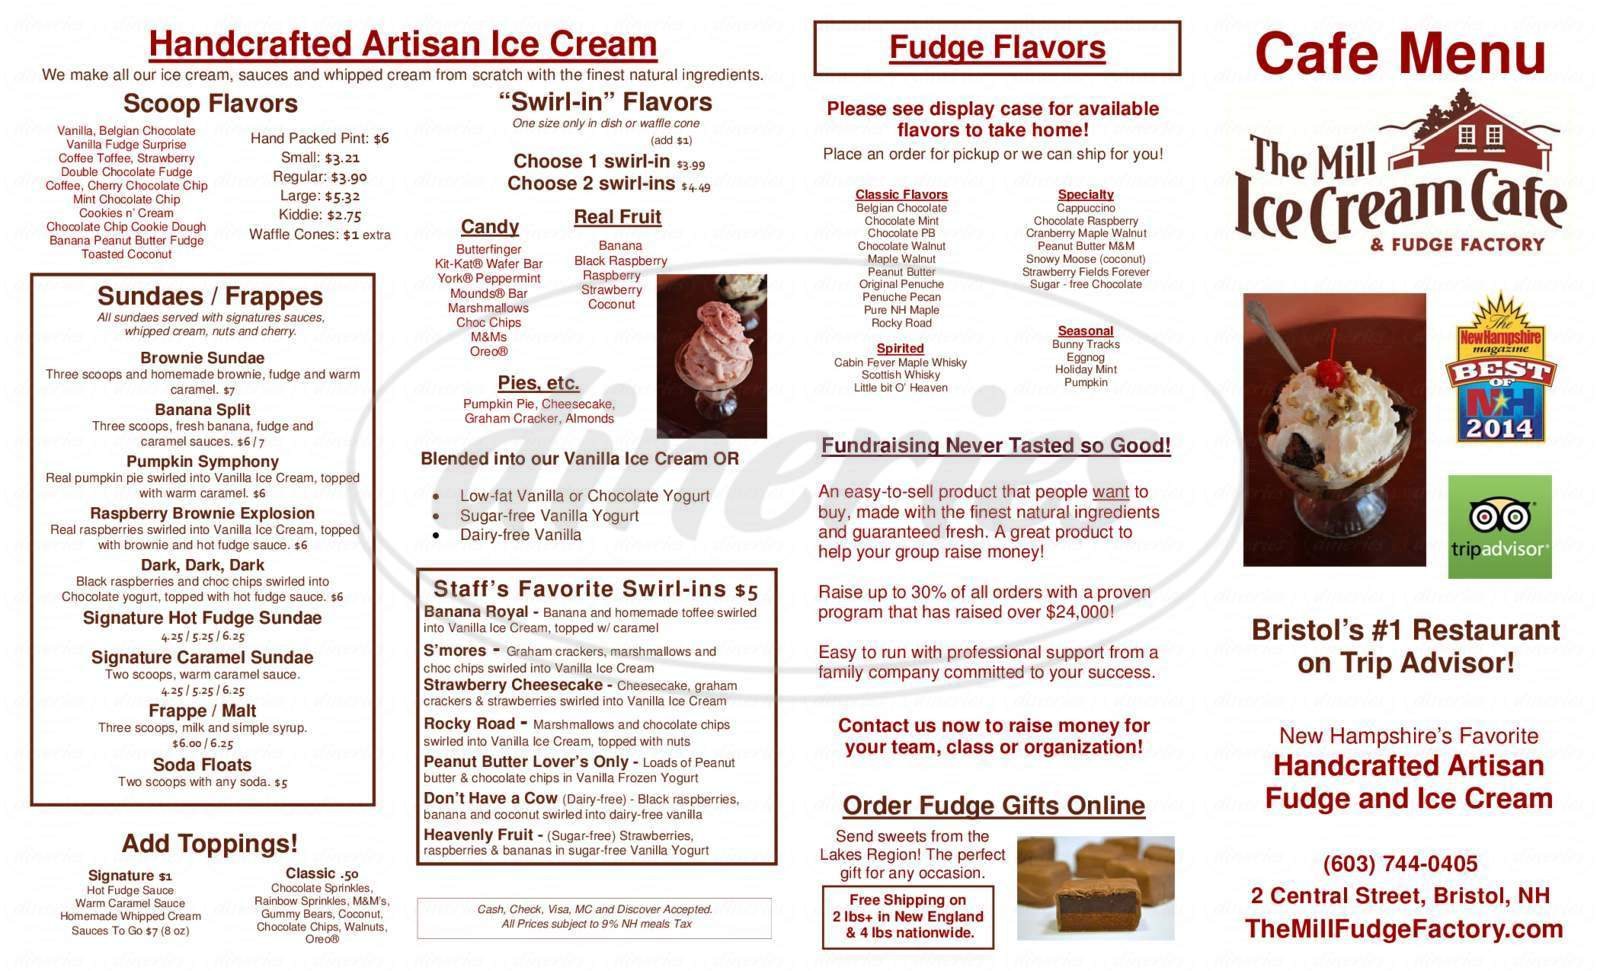 menu for The Mill Fudge Factory and Ice Cream Cafe